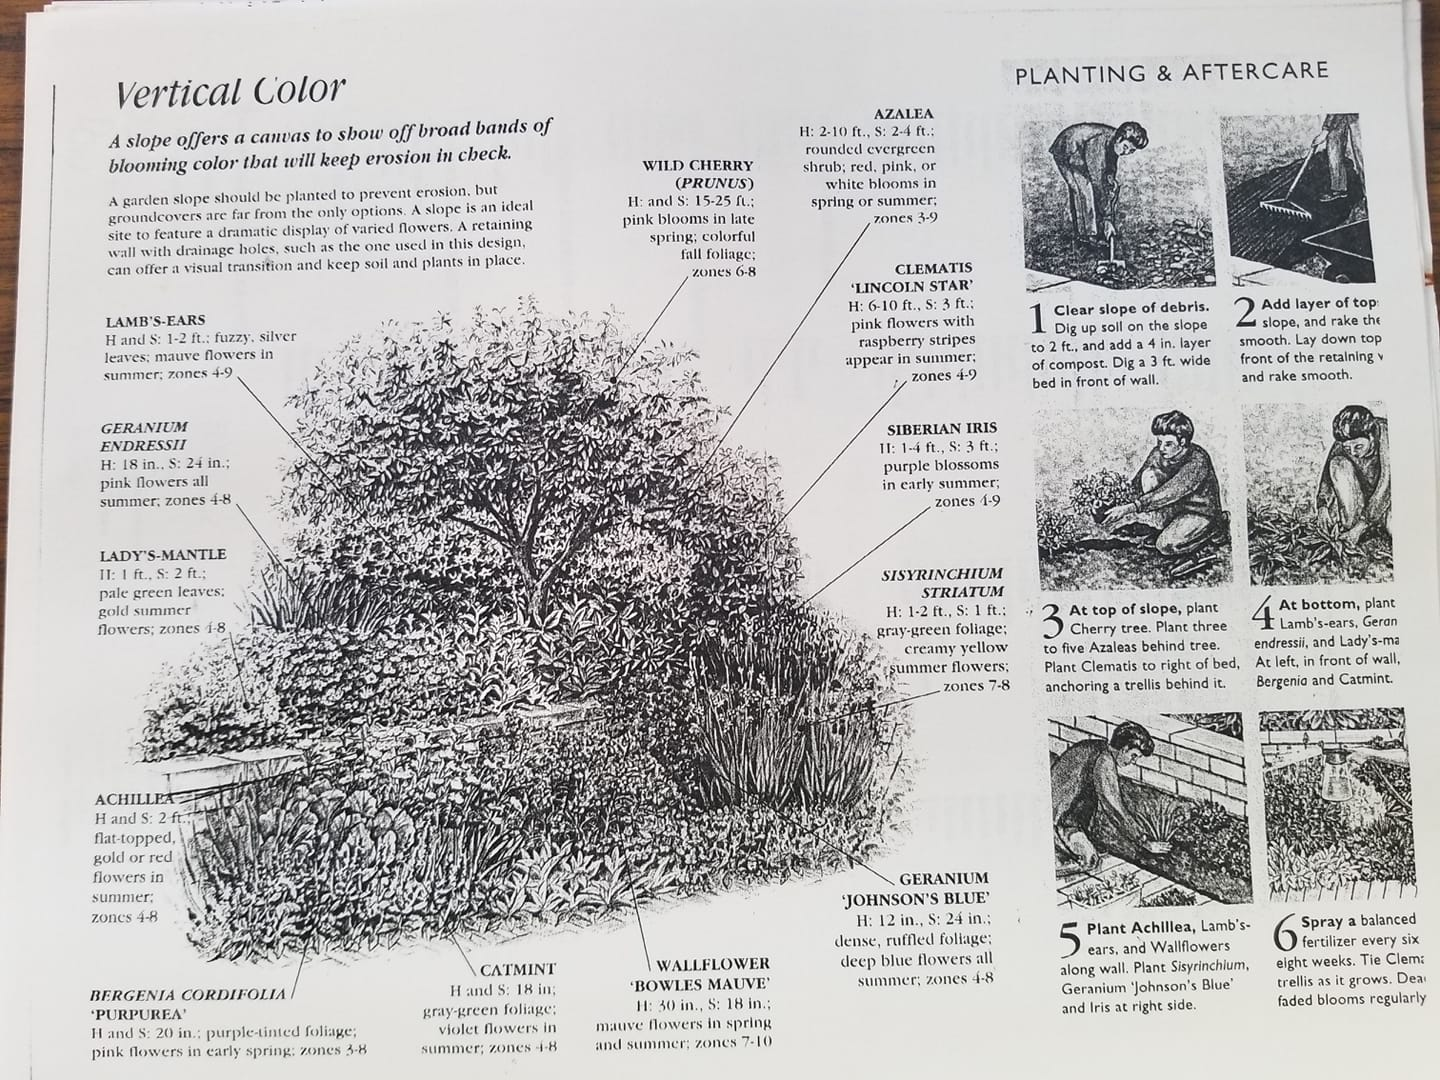 Care Instructions for plants